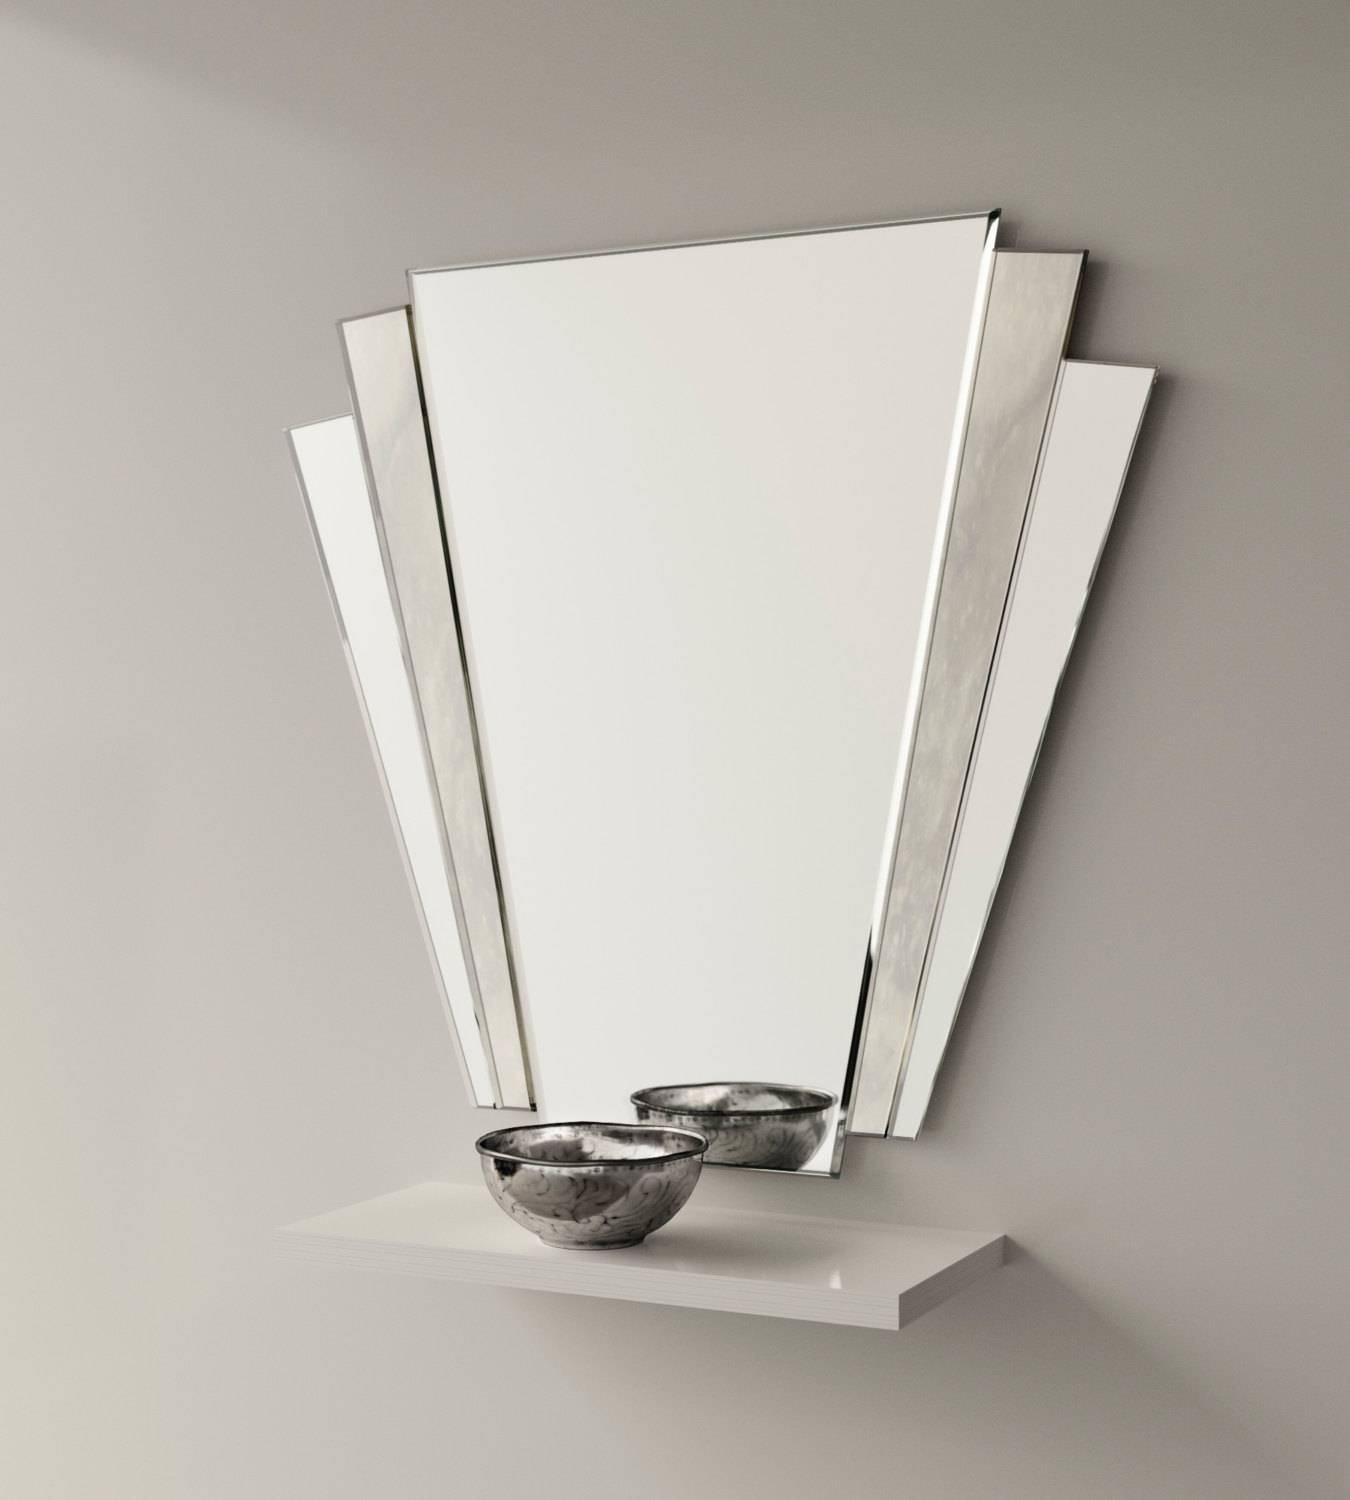 Art Deco Mirror. 1930S Inspired Art Deco Wall Mirror With pertaining to Art Deco Style Mirrors (Image 4 of 25)